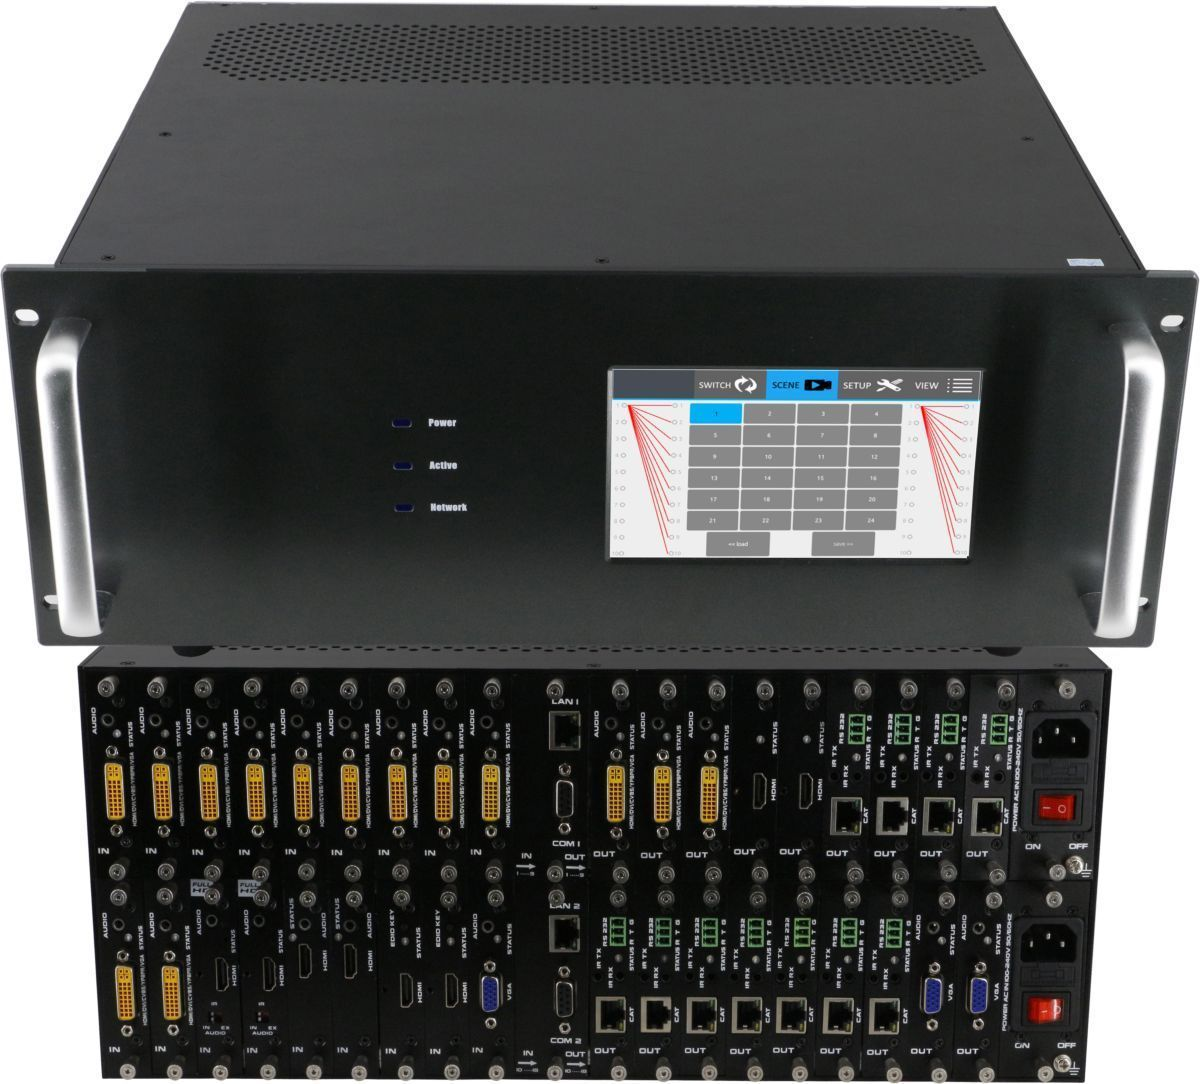 4K 12x12 HDMI Matrix Switcher with Color Touchscreen